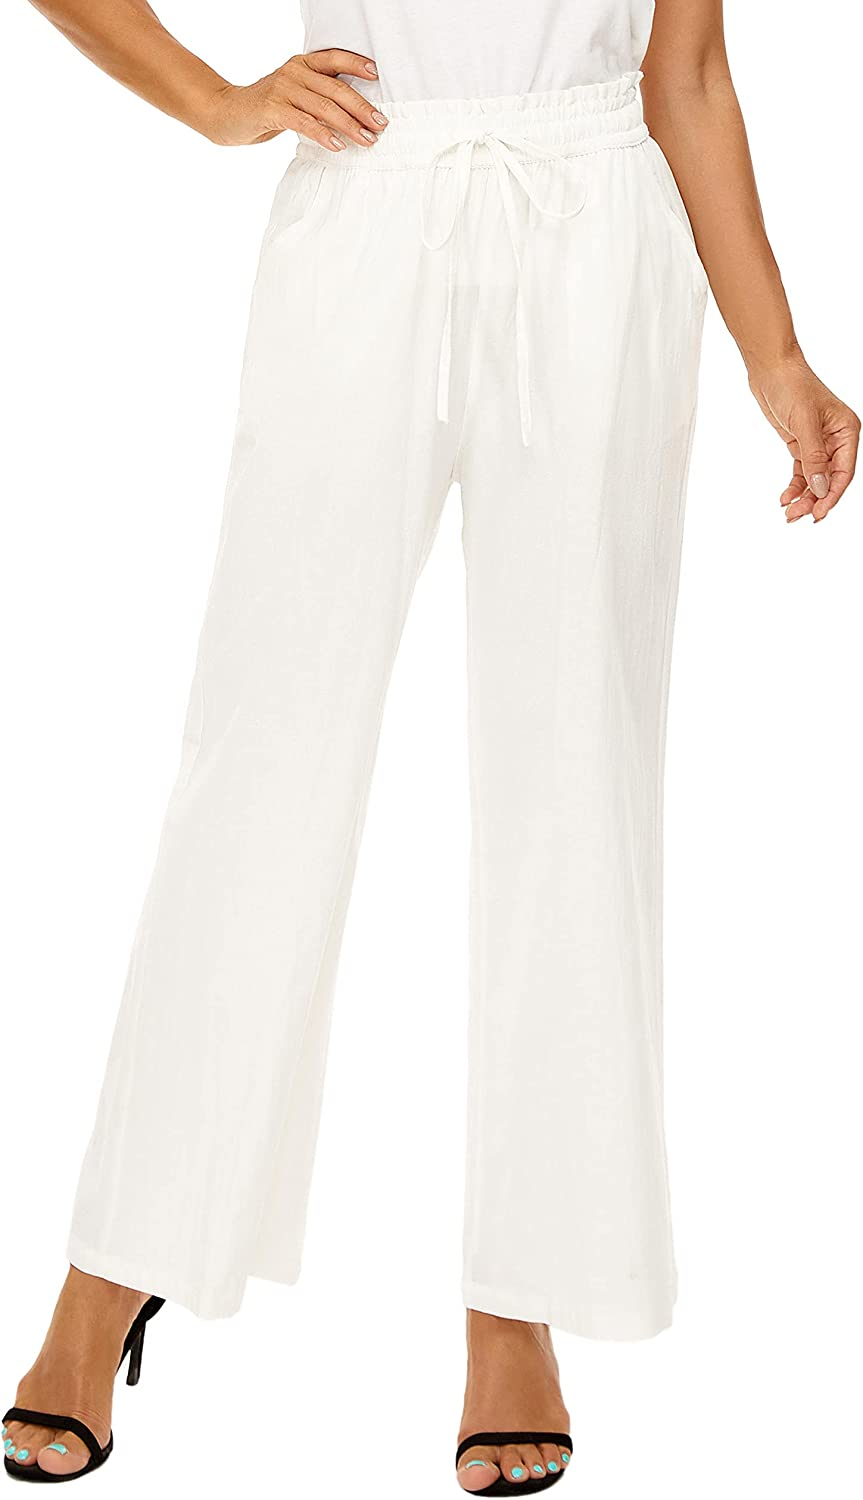 LNX Womens Casual Cotton Linen Pants Wide Leg High Waisted Solid Color Loose Trousers with Pockets